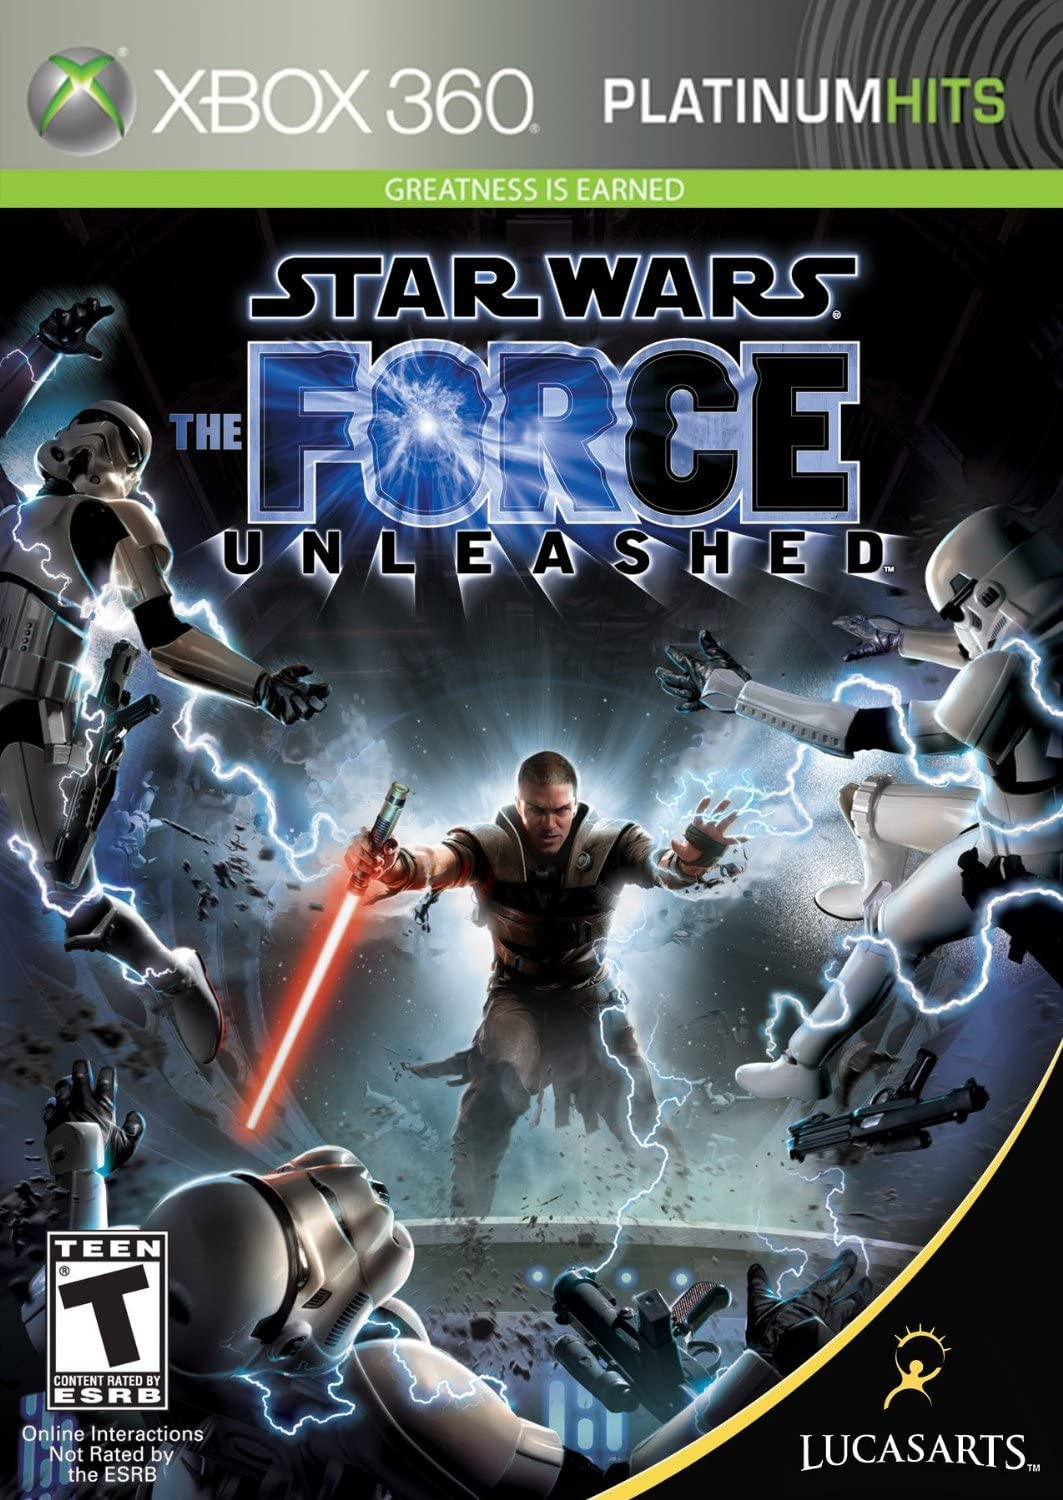 amazon com star wars the force unleashed xbox 360 artist not